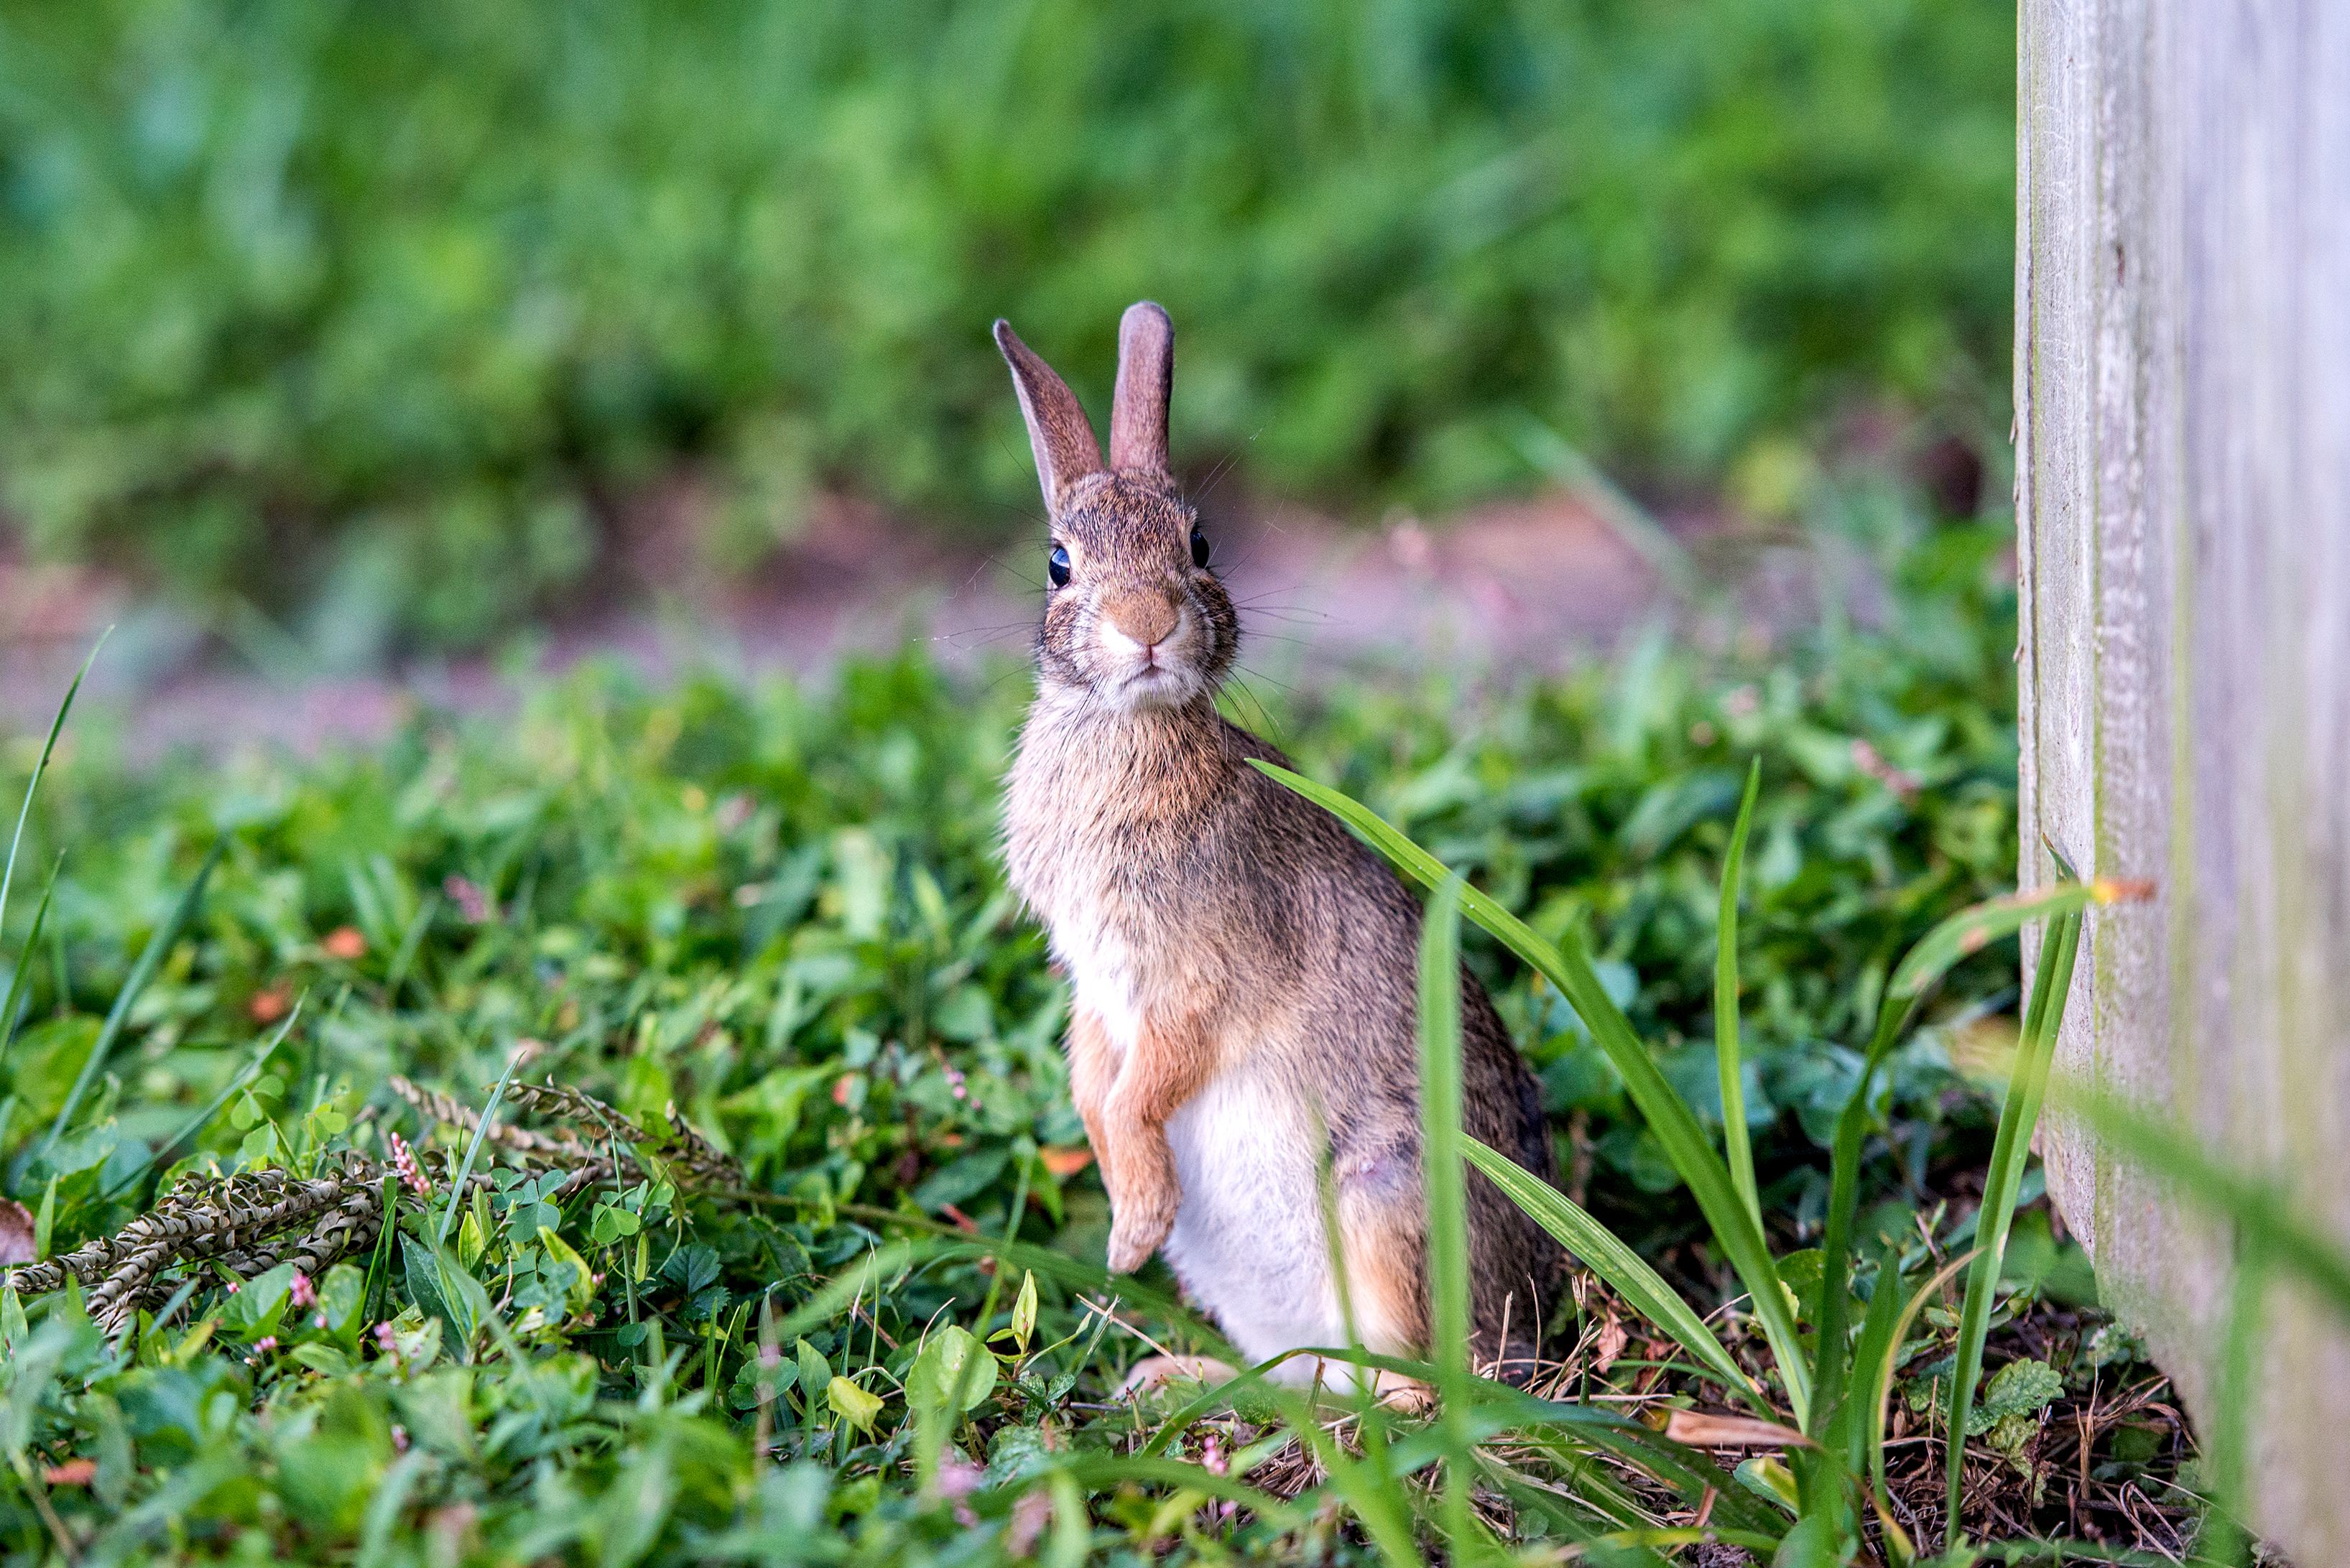 12 Ways to Keep Rabbits Out of Your Garden